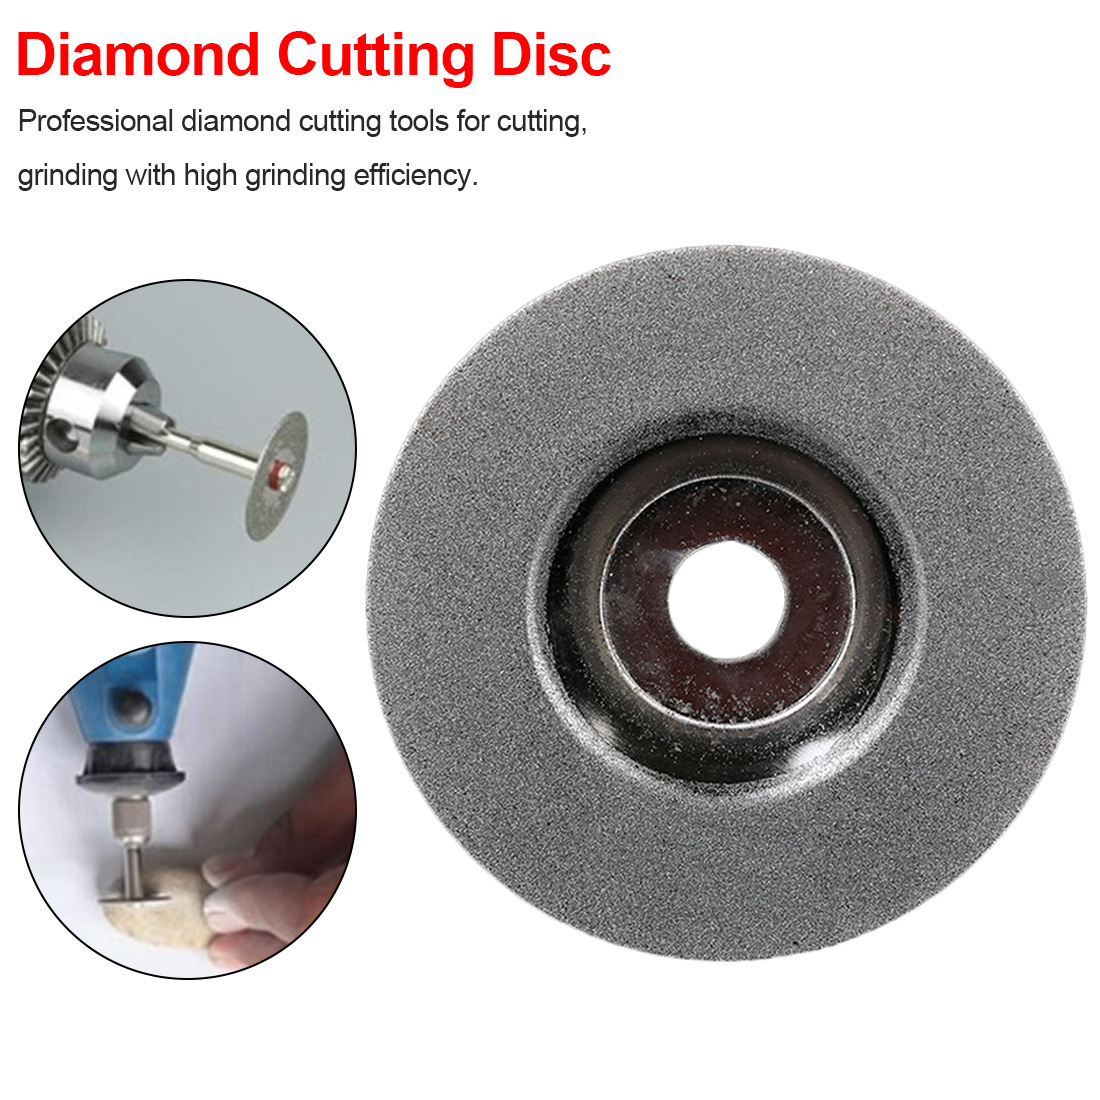 100mm Diamond Grinding Disc Cut Off Discs Wheel Glass Cuttering Saw Blades Rotary Abrasive Tools